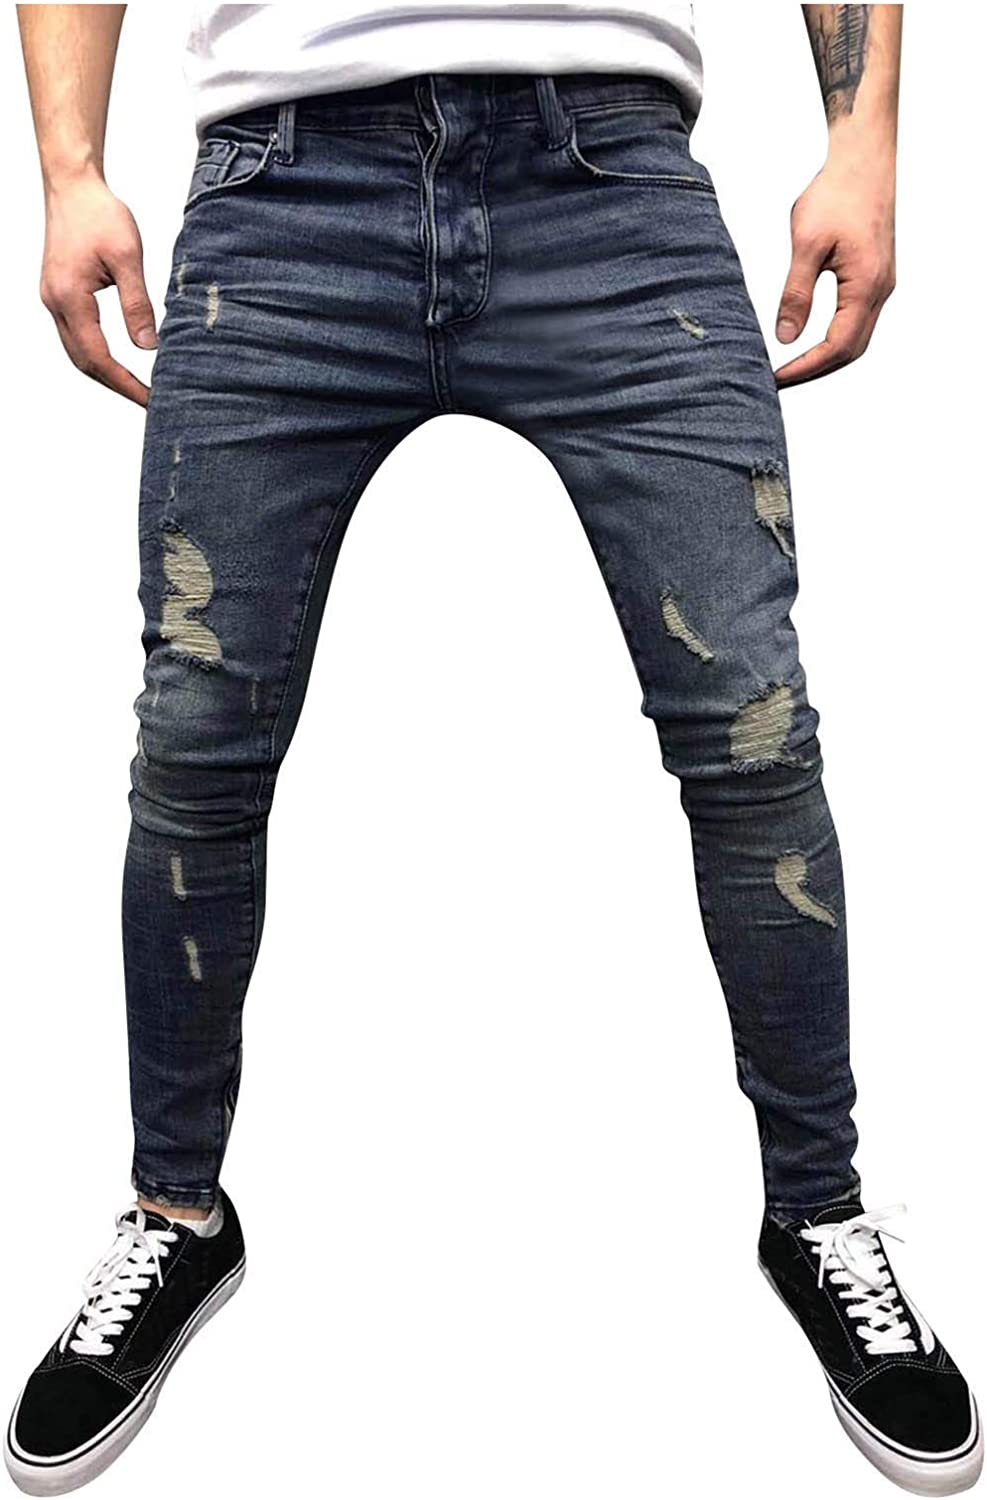 ZCAITIANYA Men's Jeans Trousers Casual 25% OFF Summe Straight Challenge the lowest price of Japan Holes Slim